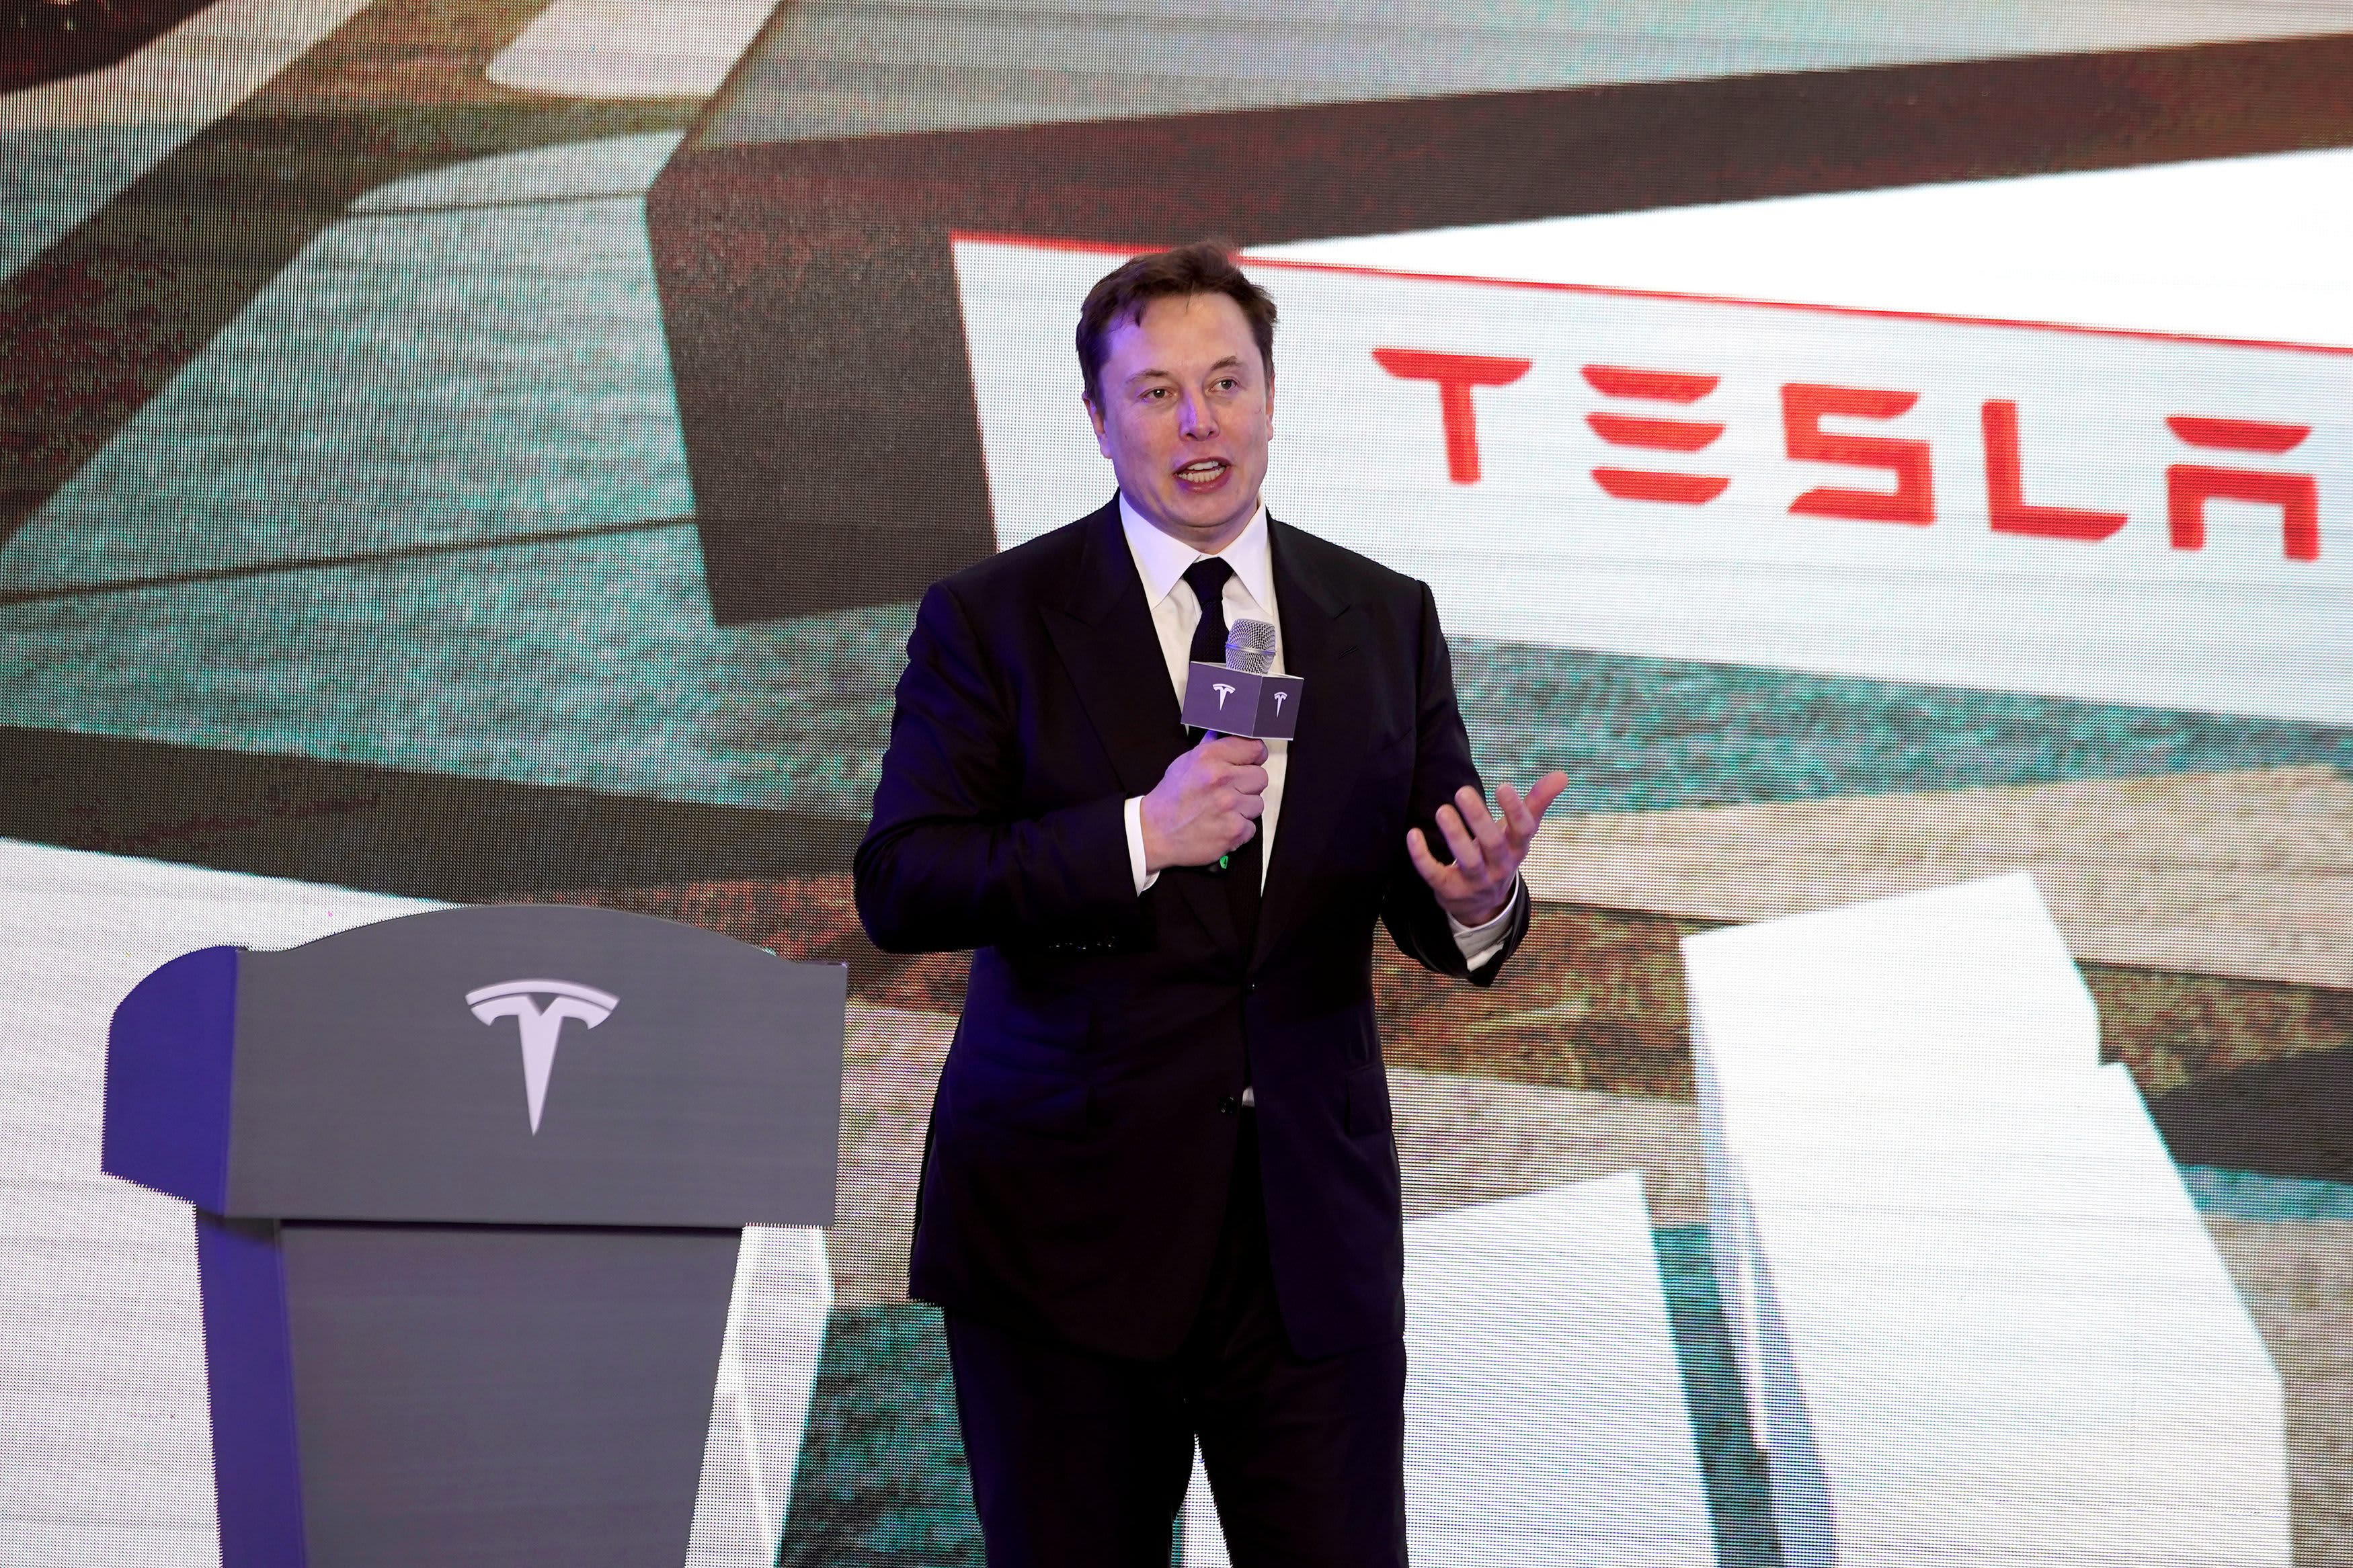 Tesla (TSLA) Q2 2020 vehicle delivery numbers beat expectations 102